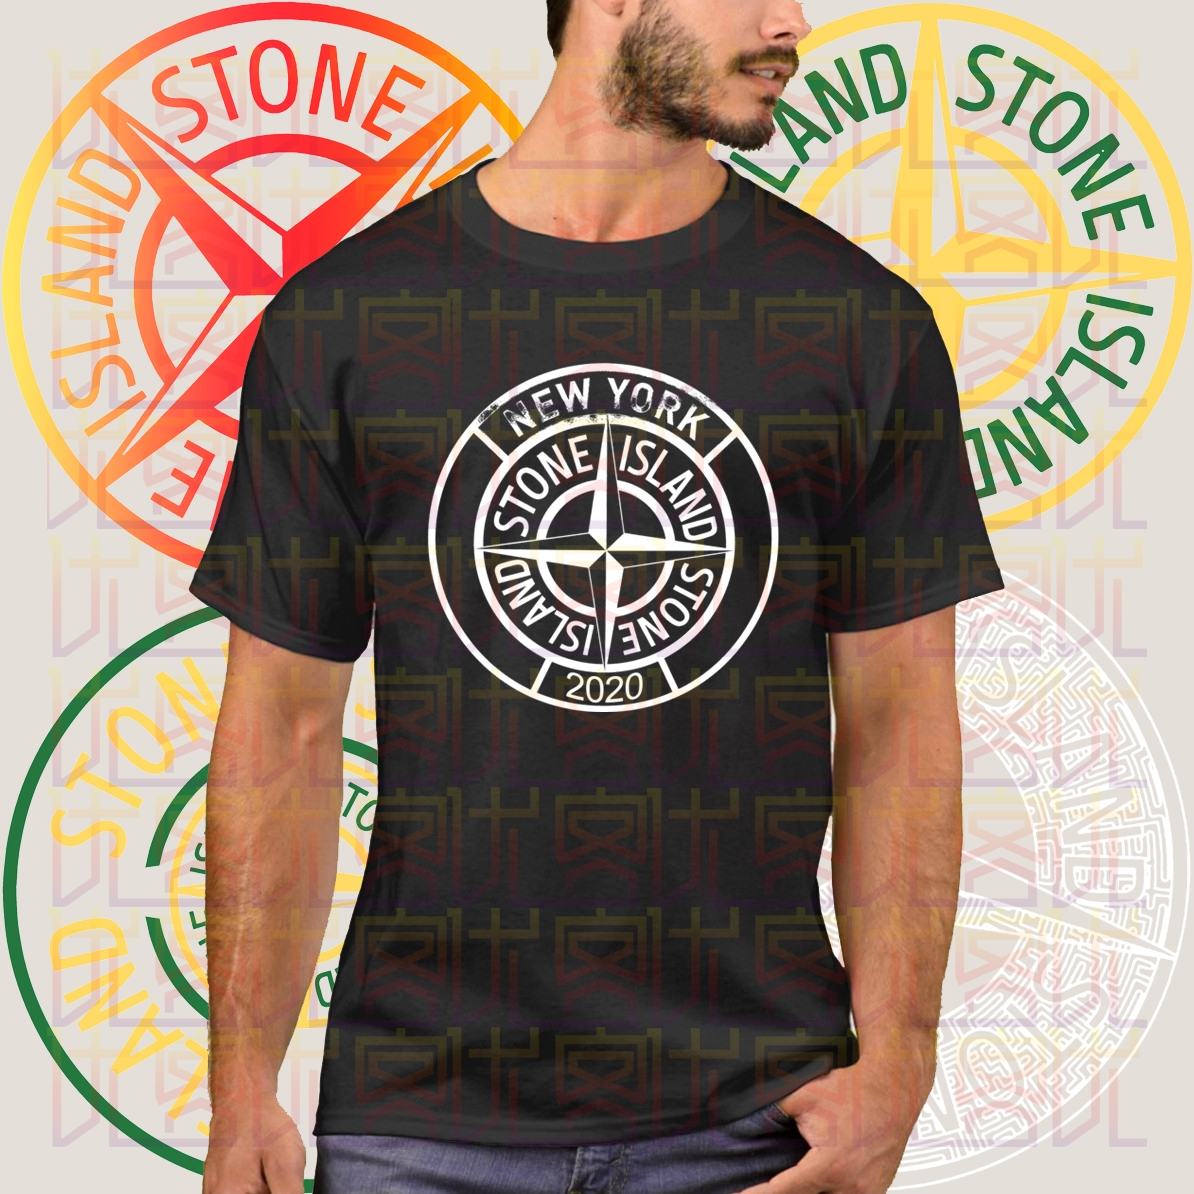 2020 New Stone Logo Is-land Summer Print Black T-Shirt Clothes Popular Shirt Cotton Tees Amazing Short Sleeve Unique Men Tops